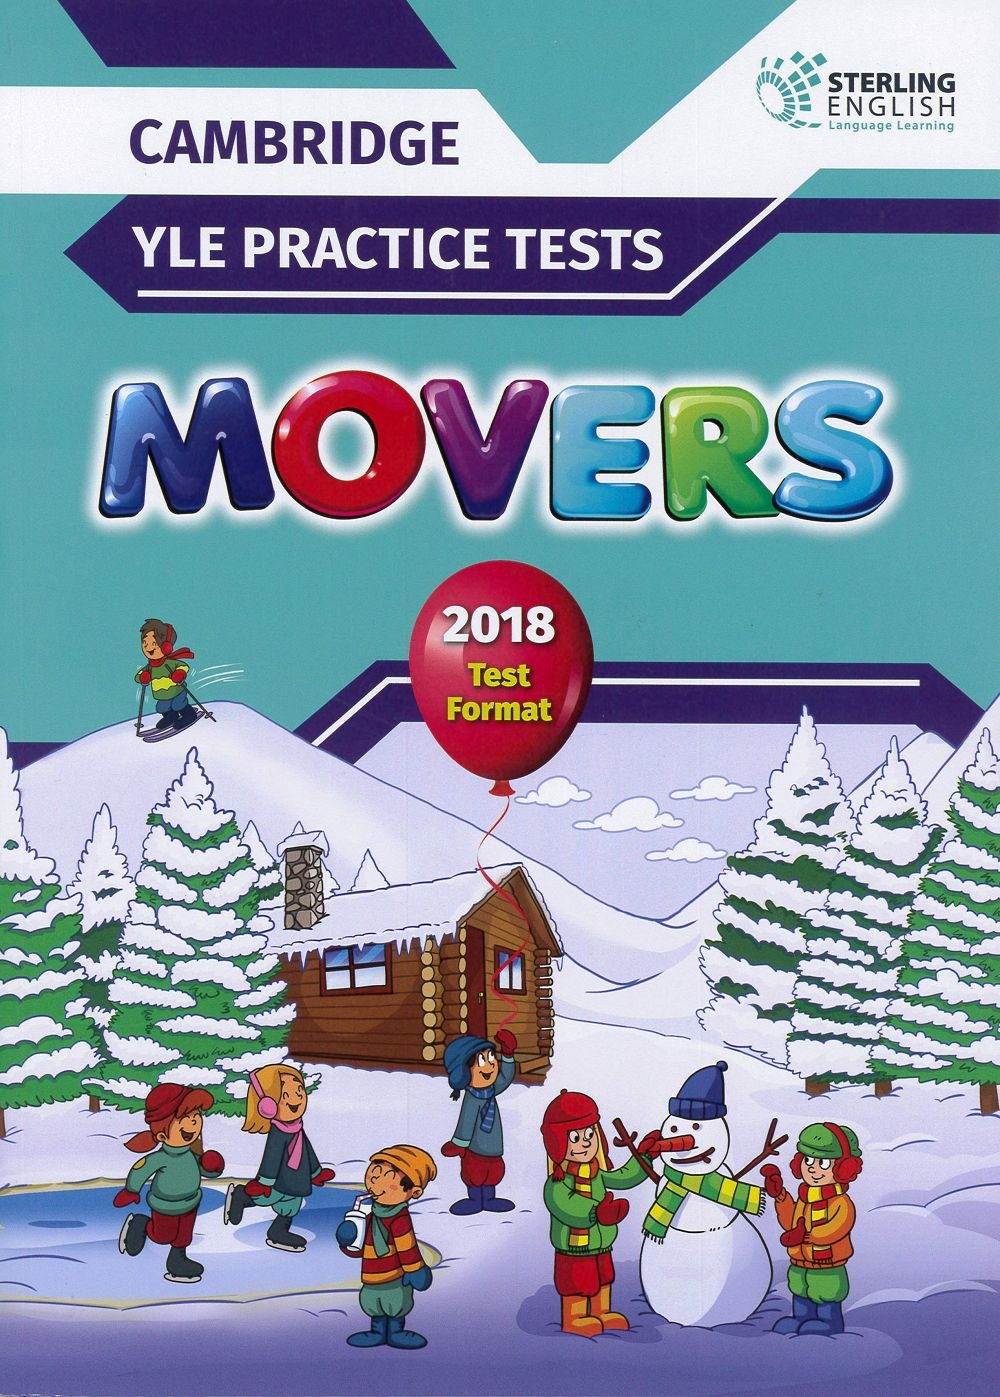 Cambridge YLE Practice Tests Movers 2018 Test Format Student's Book with Answer Key(Sterling)